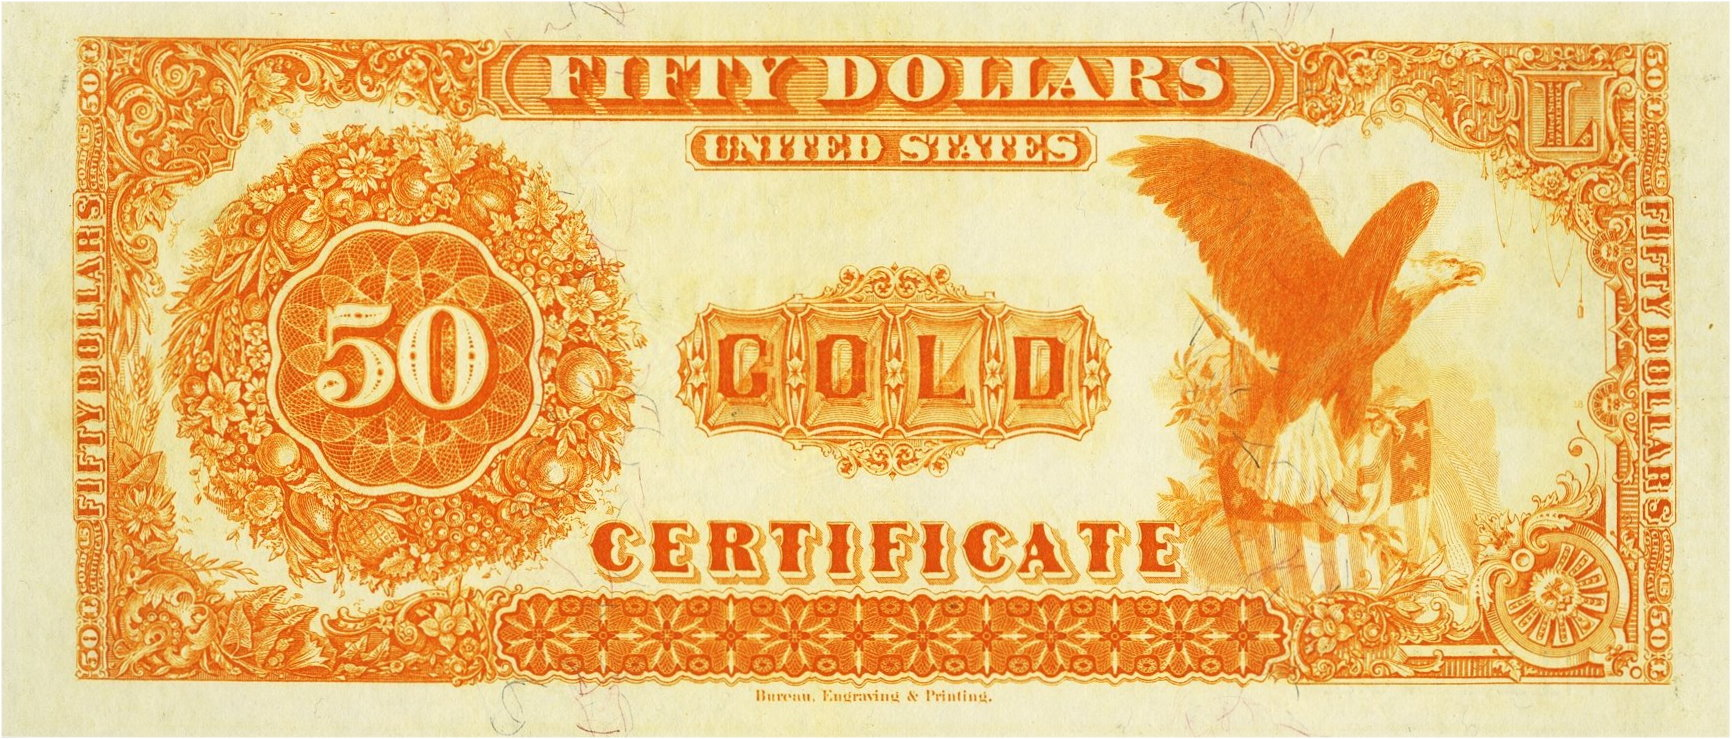 Gold certificates and bank notes for sale donckelly 50 gold notes series 1913 1922 xflitez Choice Image